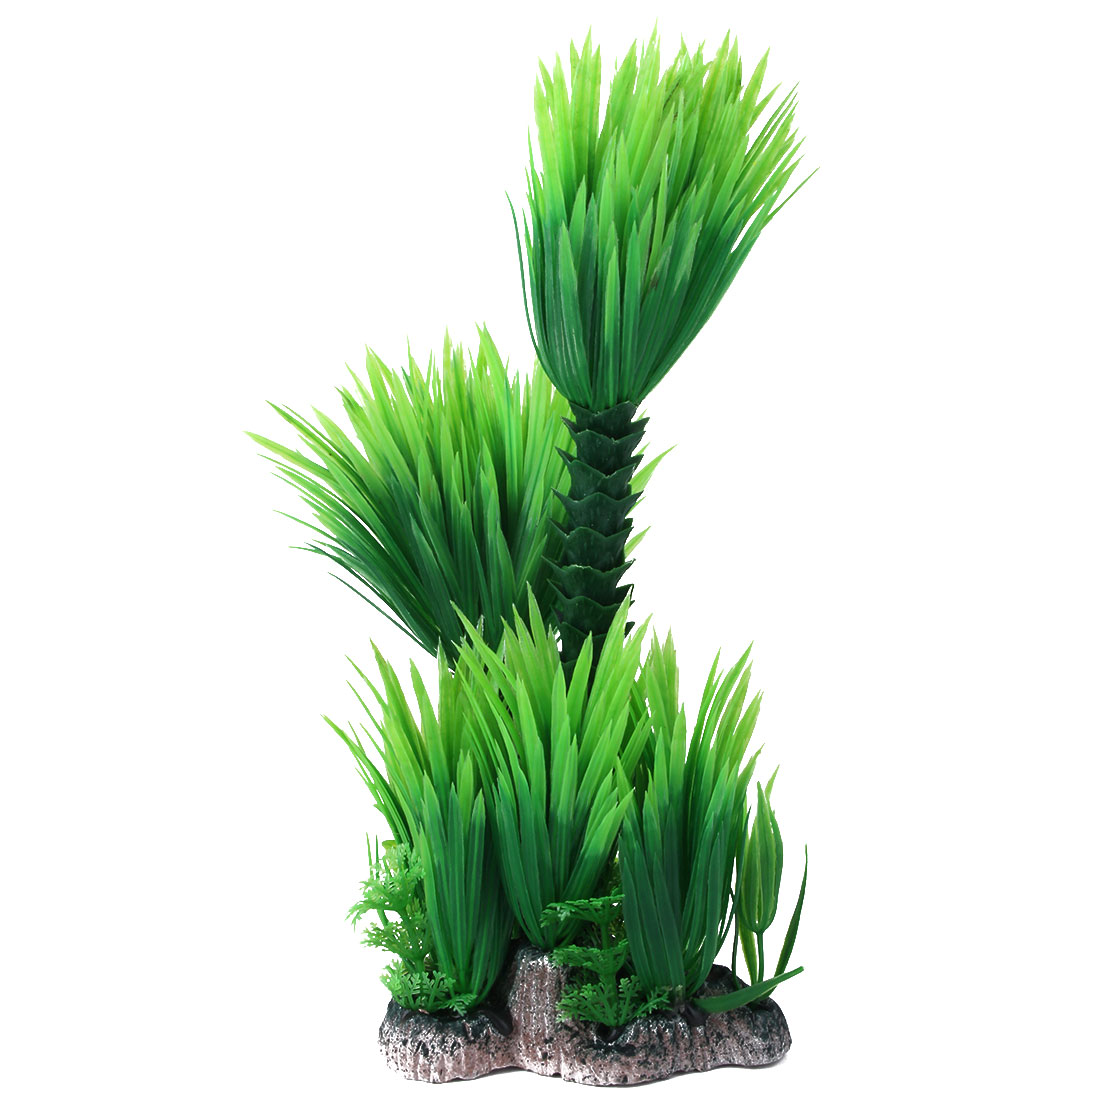 Home Office Aquarium Plastic Emulational Underwater Plant Decor Green 27cm Height